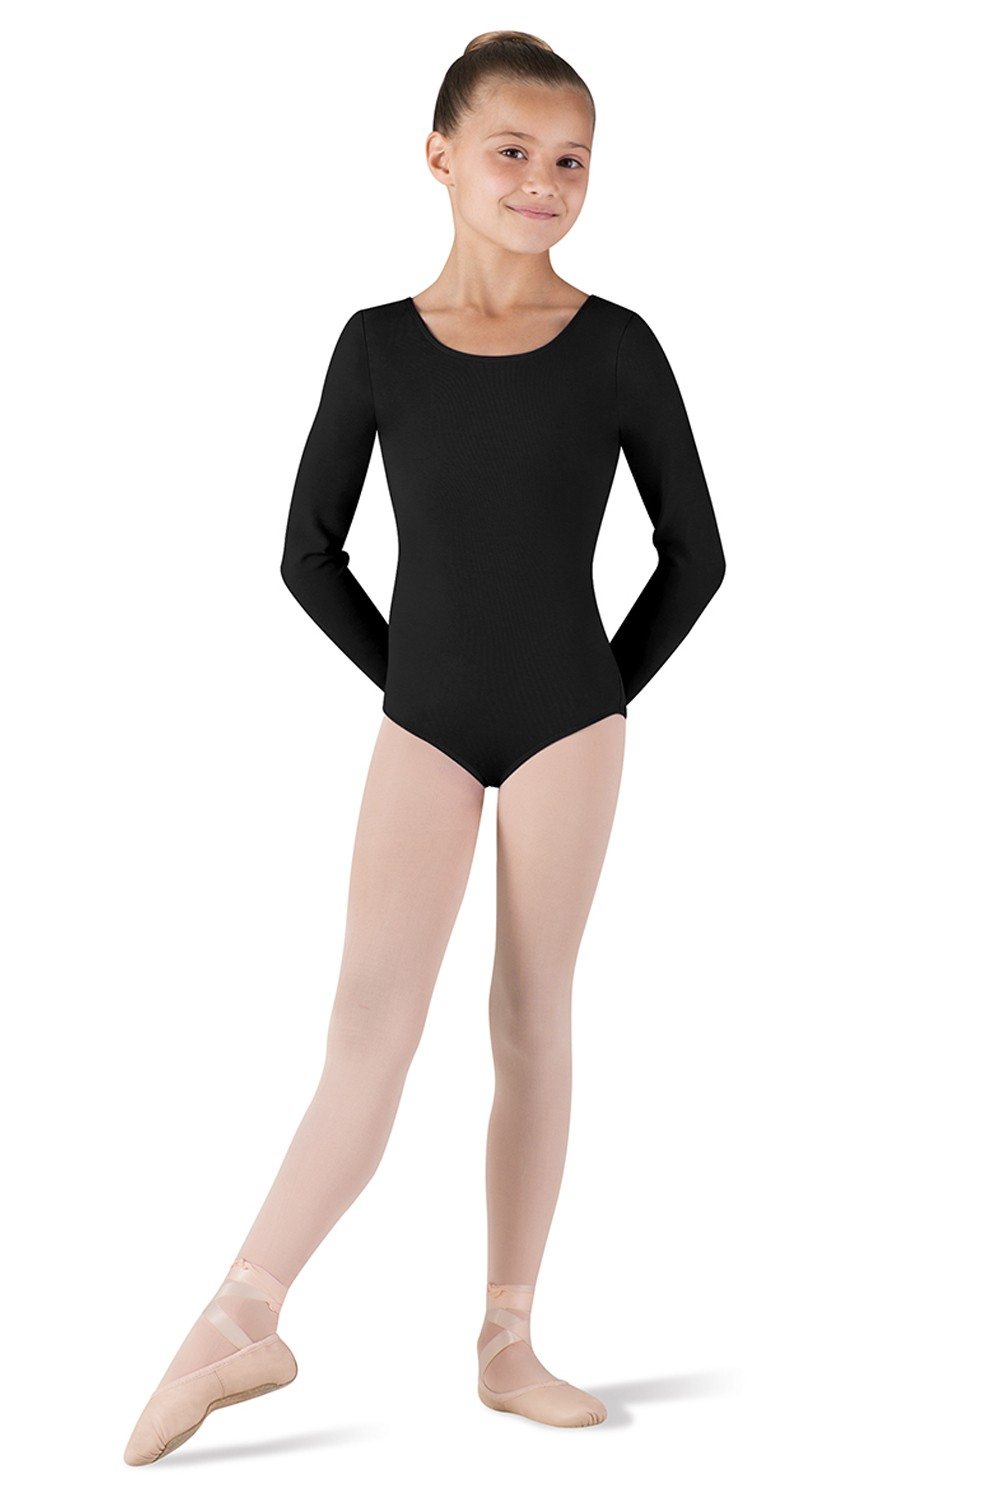 Petit Children's Dance Leotards